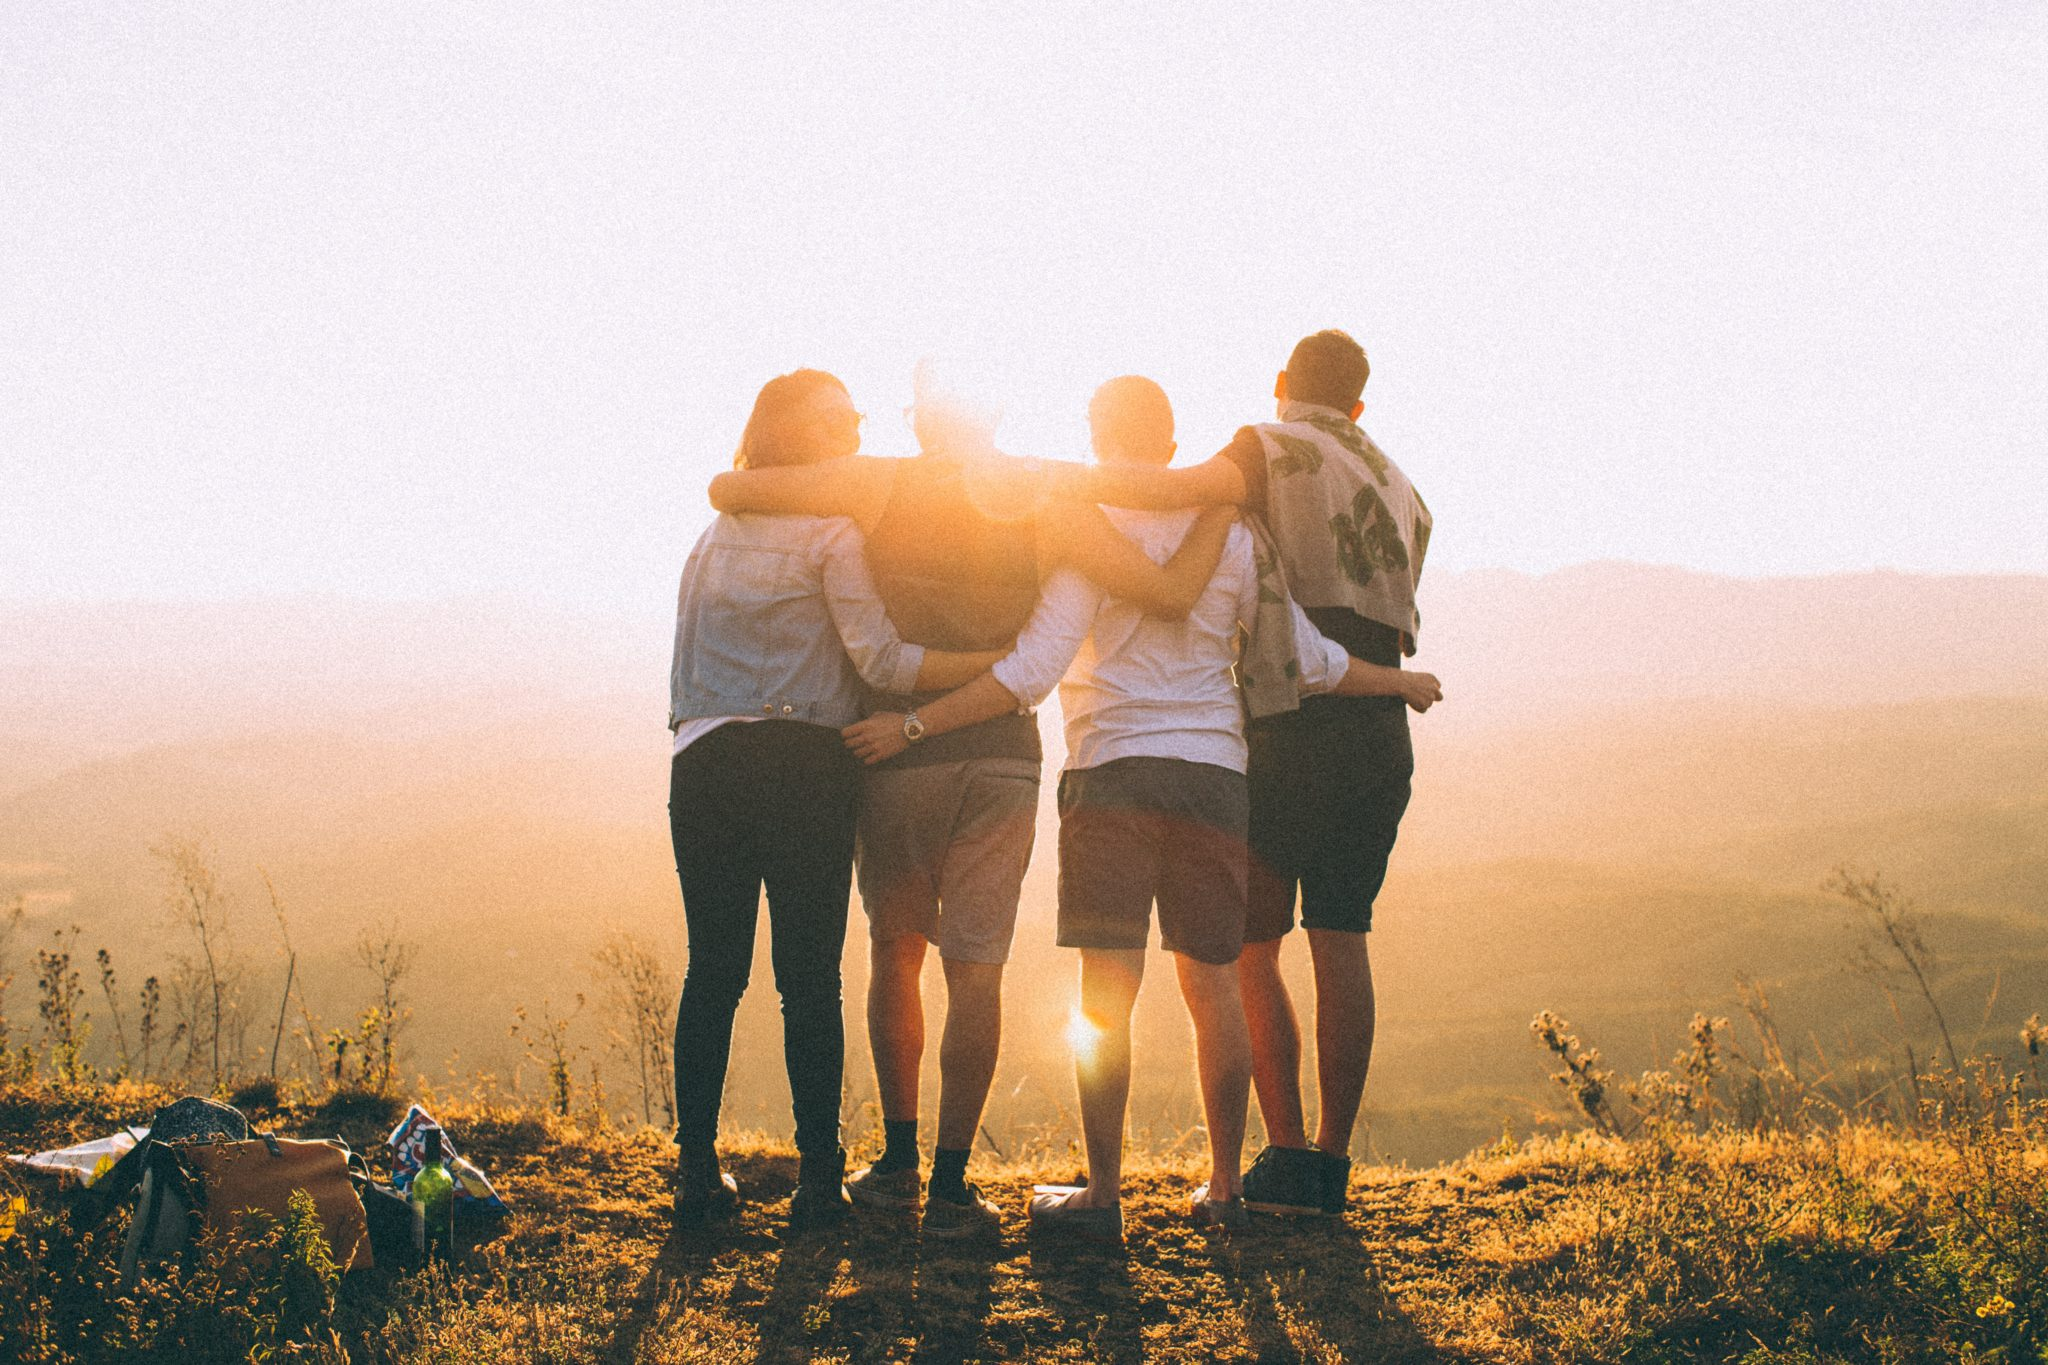 A group of young people with their arms around each other.